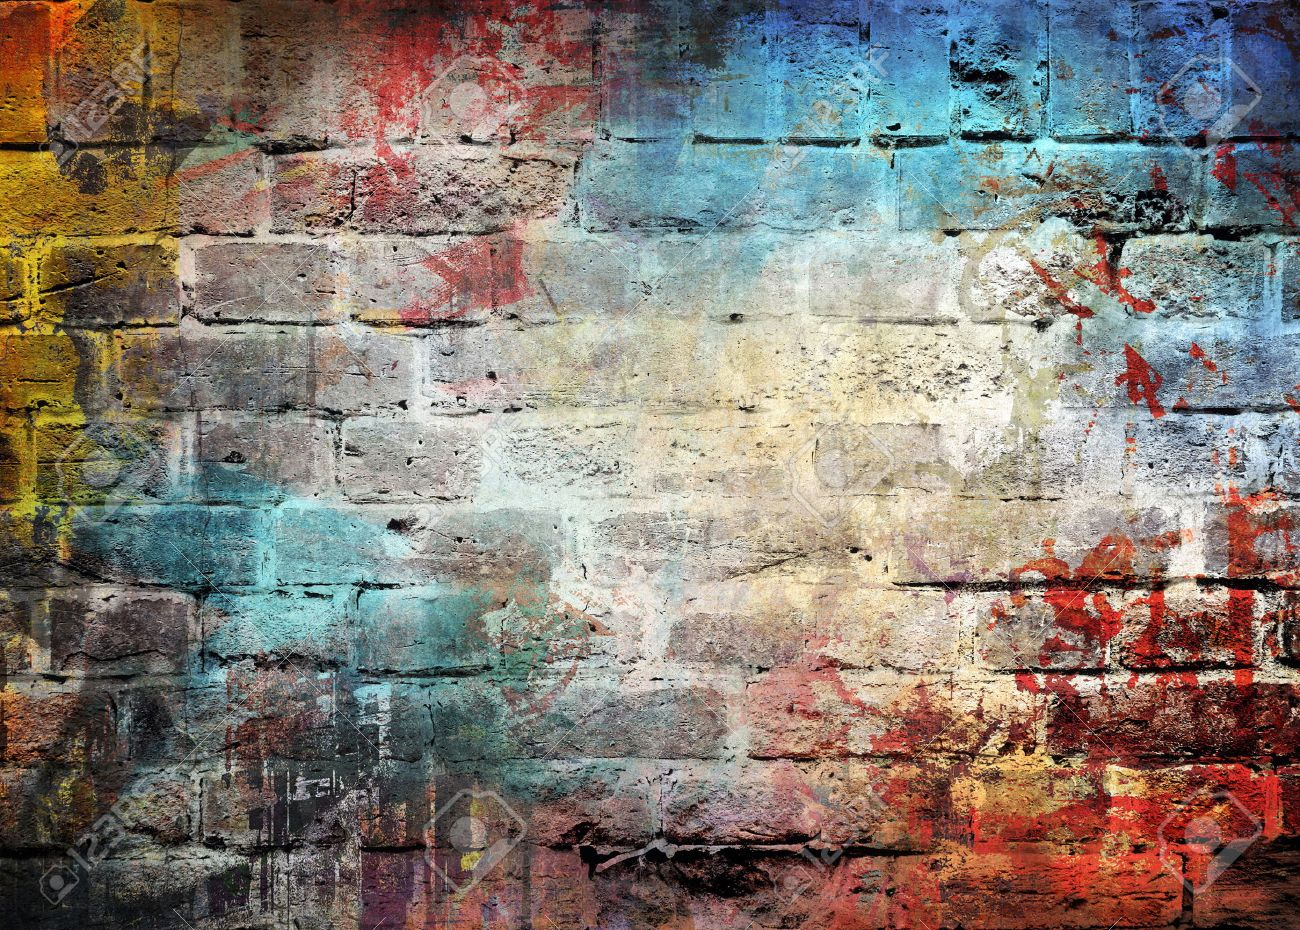 Grafitti wall background - Graffiti Wall Background Graffiti Wall Background